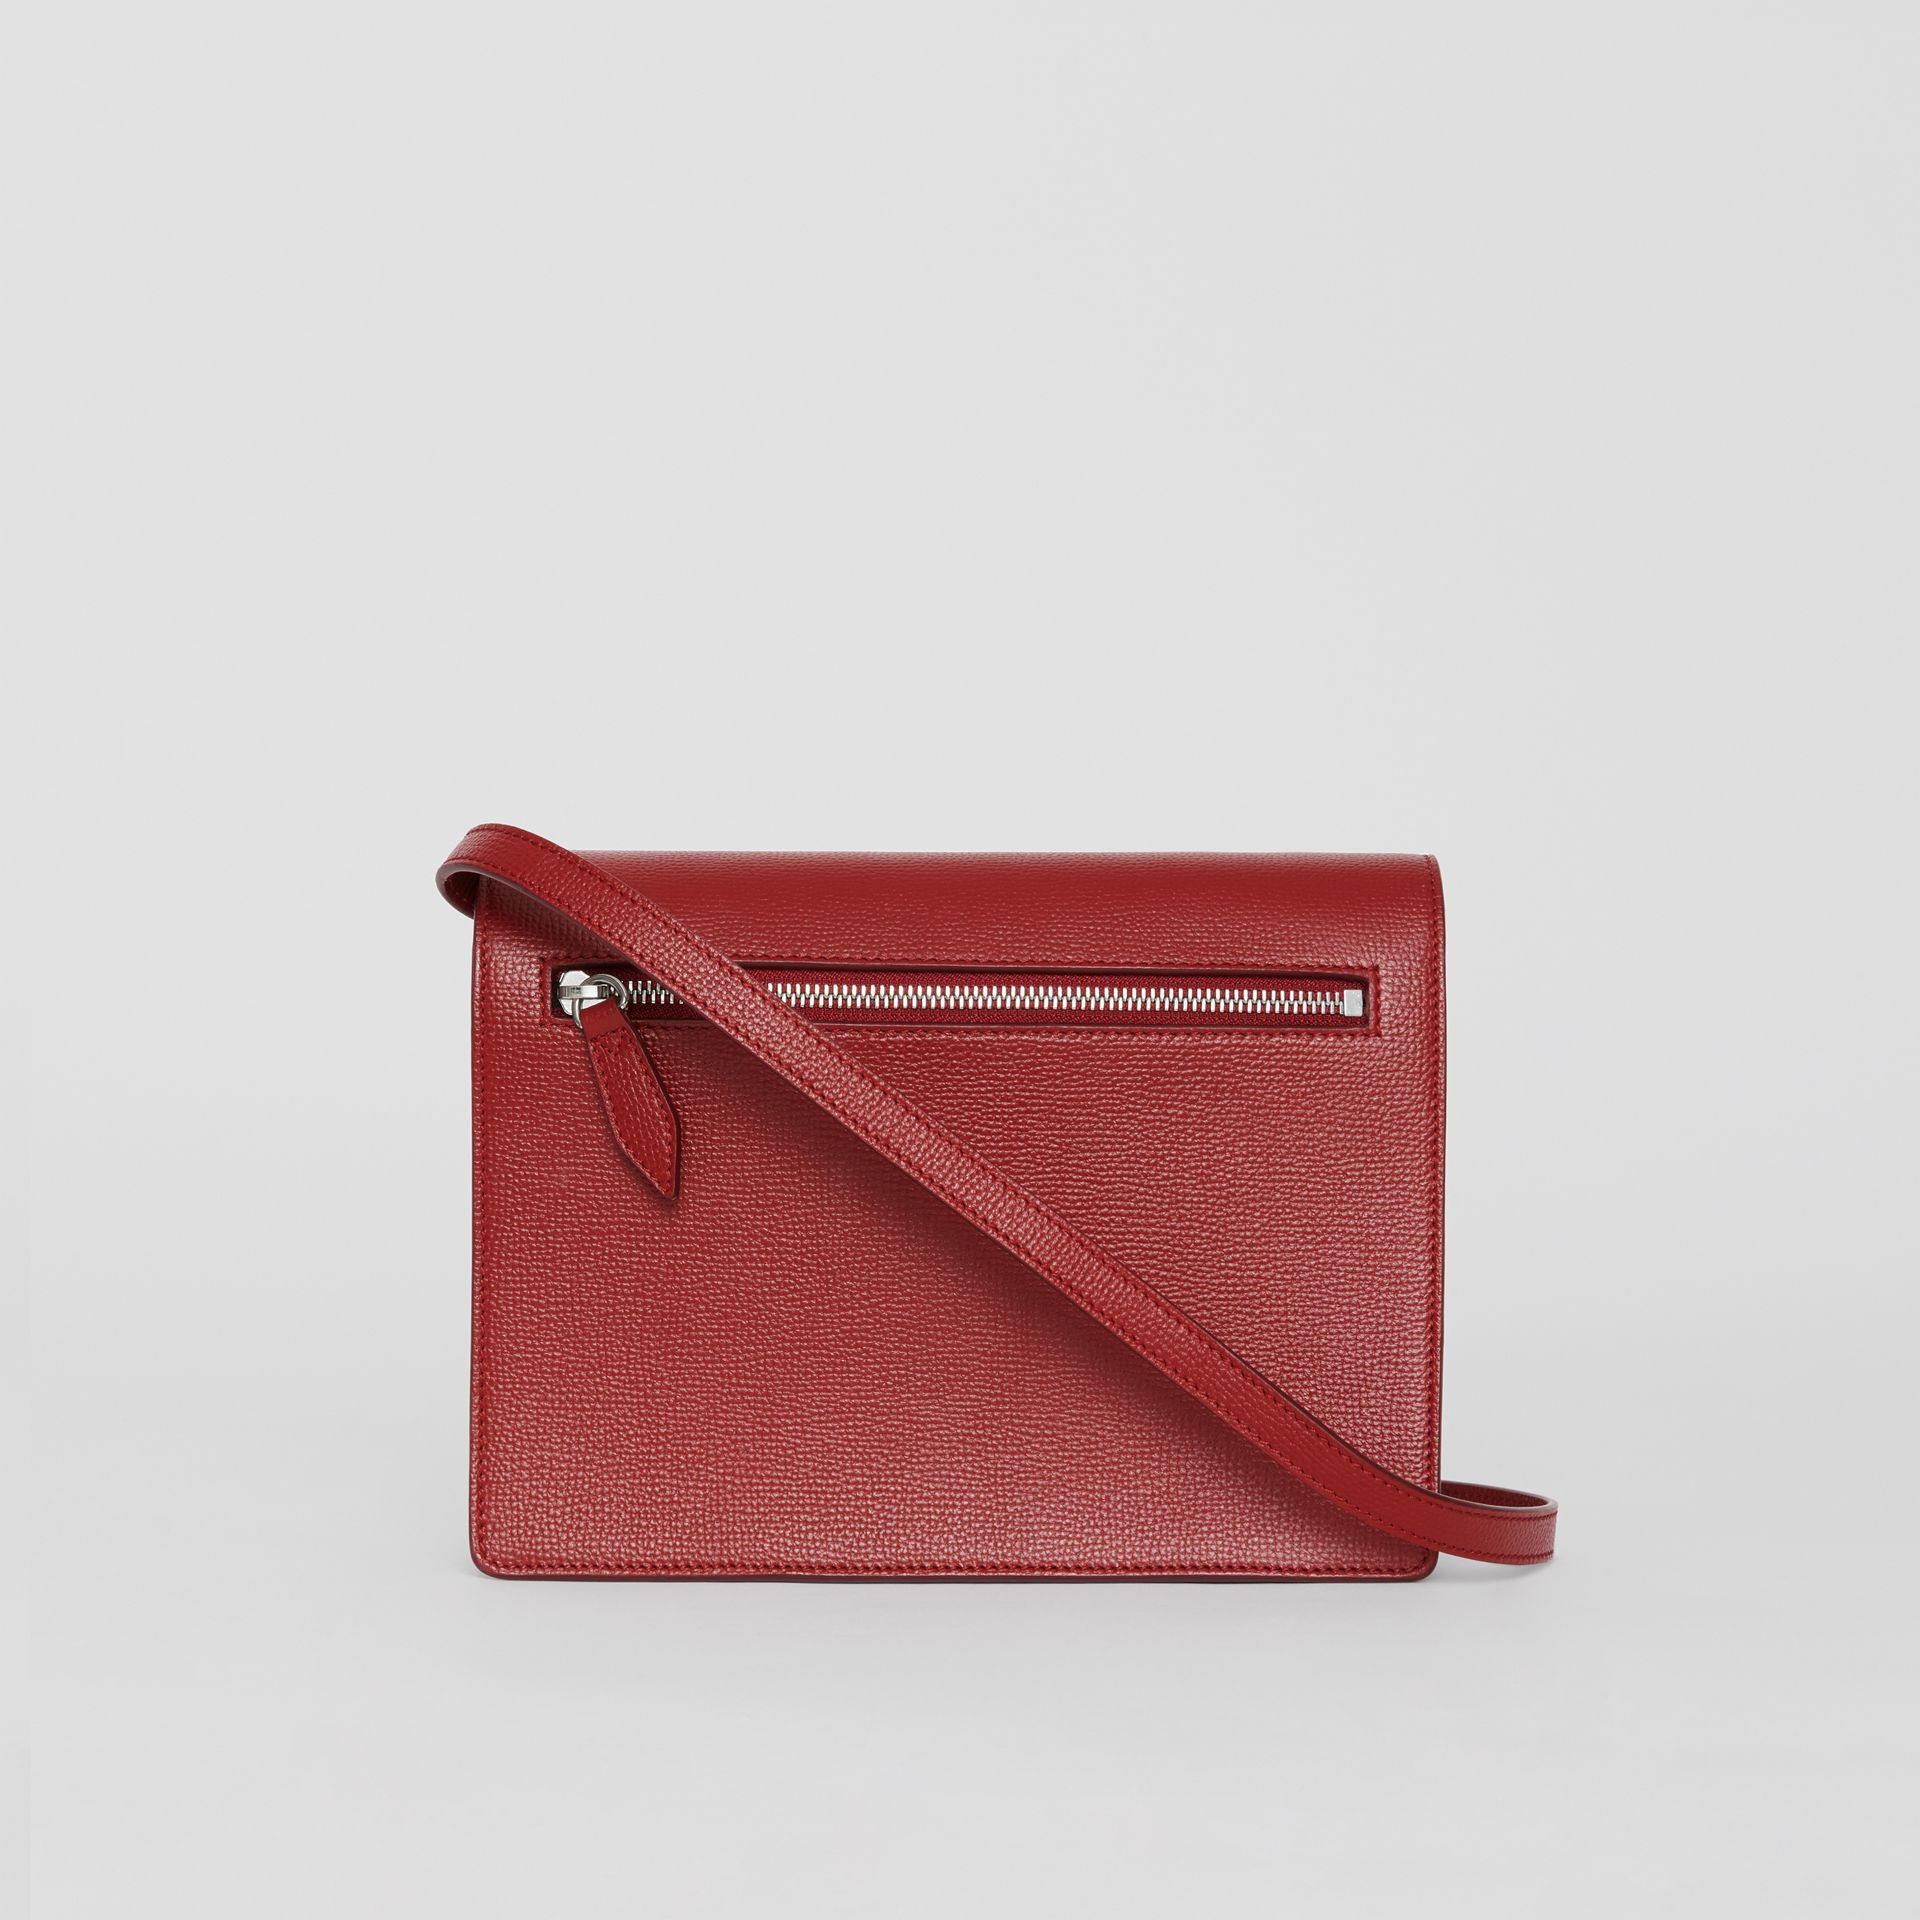 Small Vintage Check and Leather Crossbody Bag in Crimson - Women | Burberry United Kingdom - gallery image 7